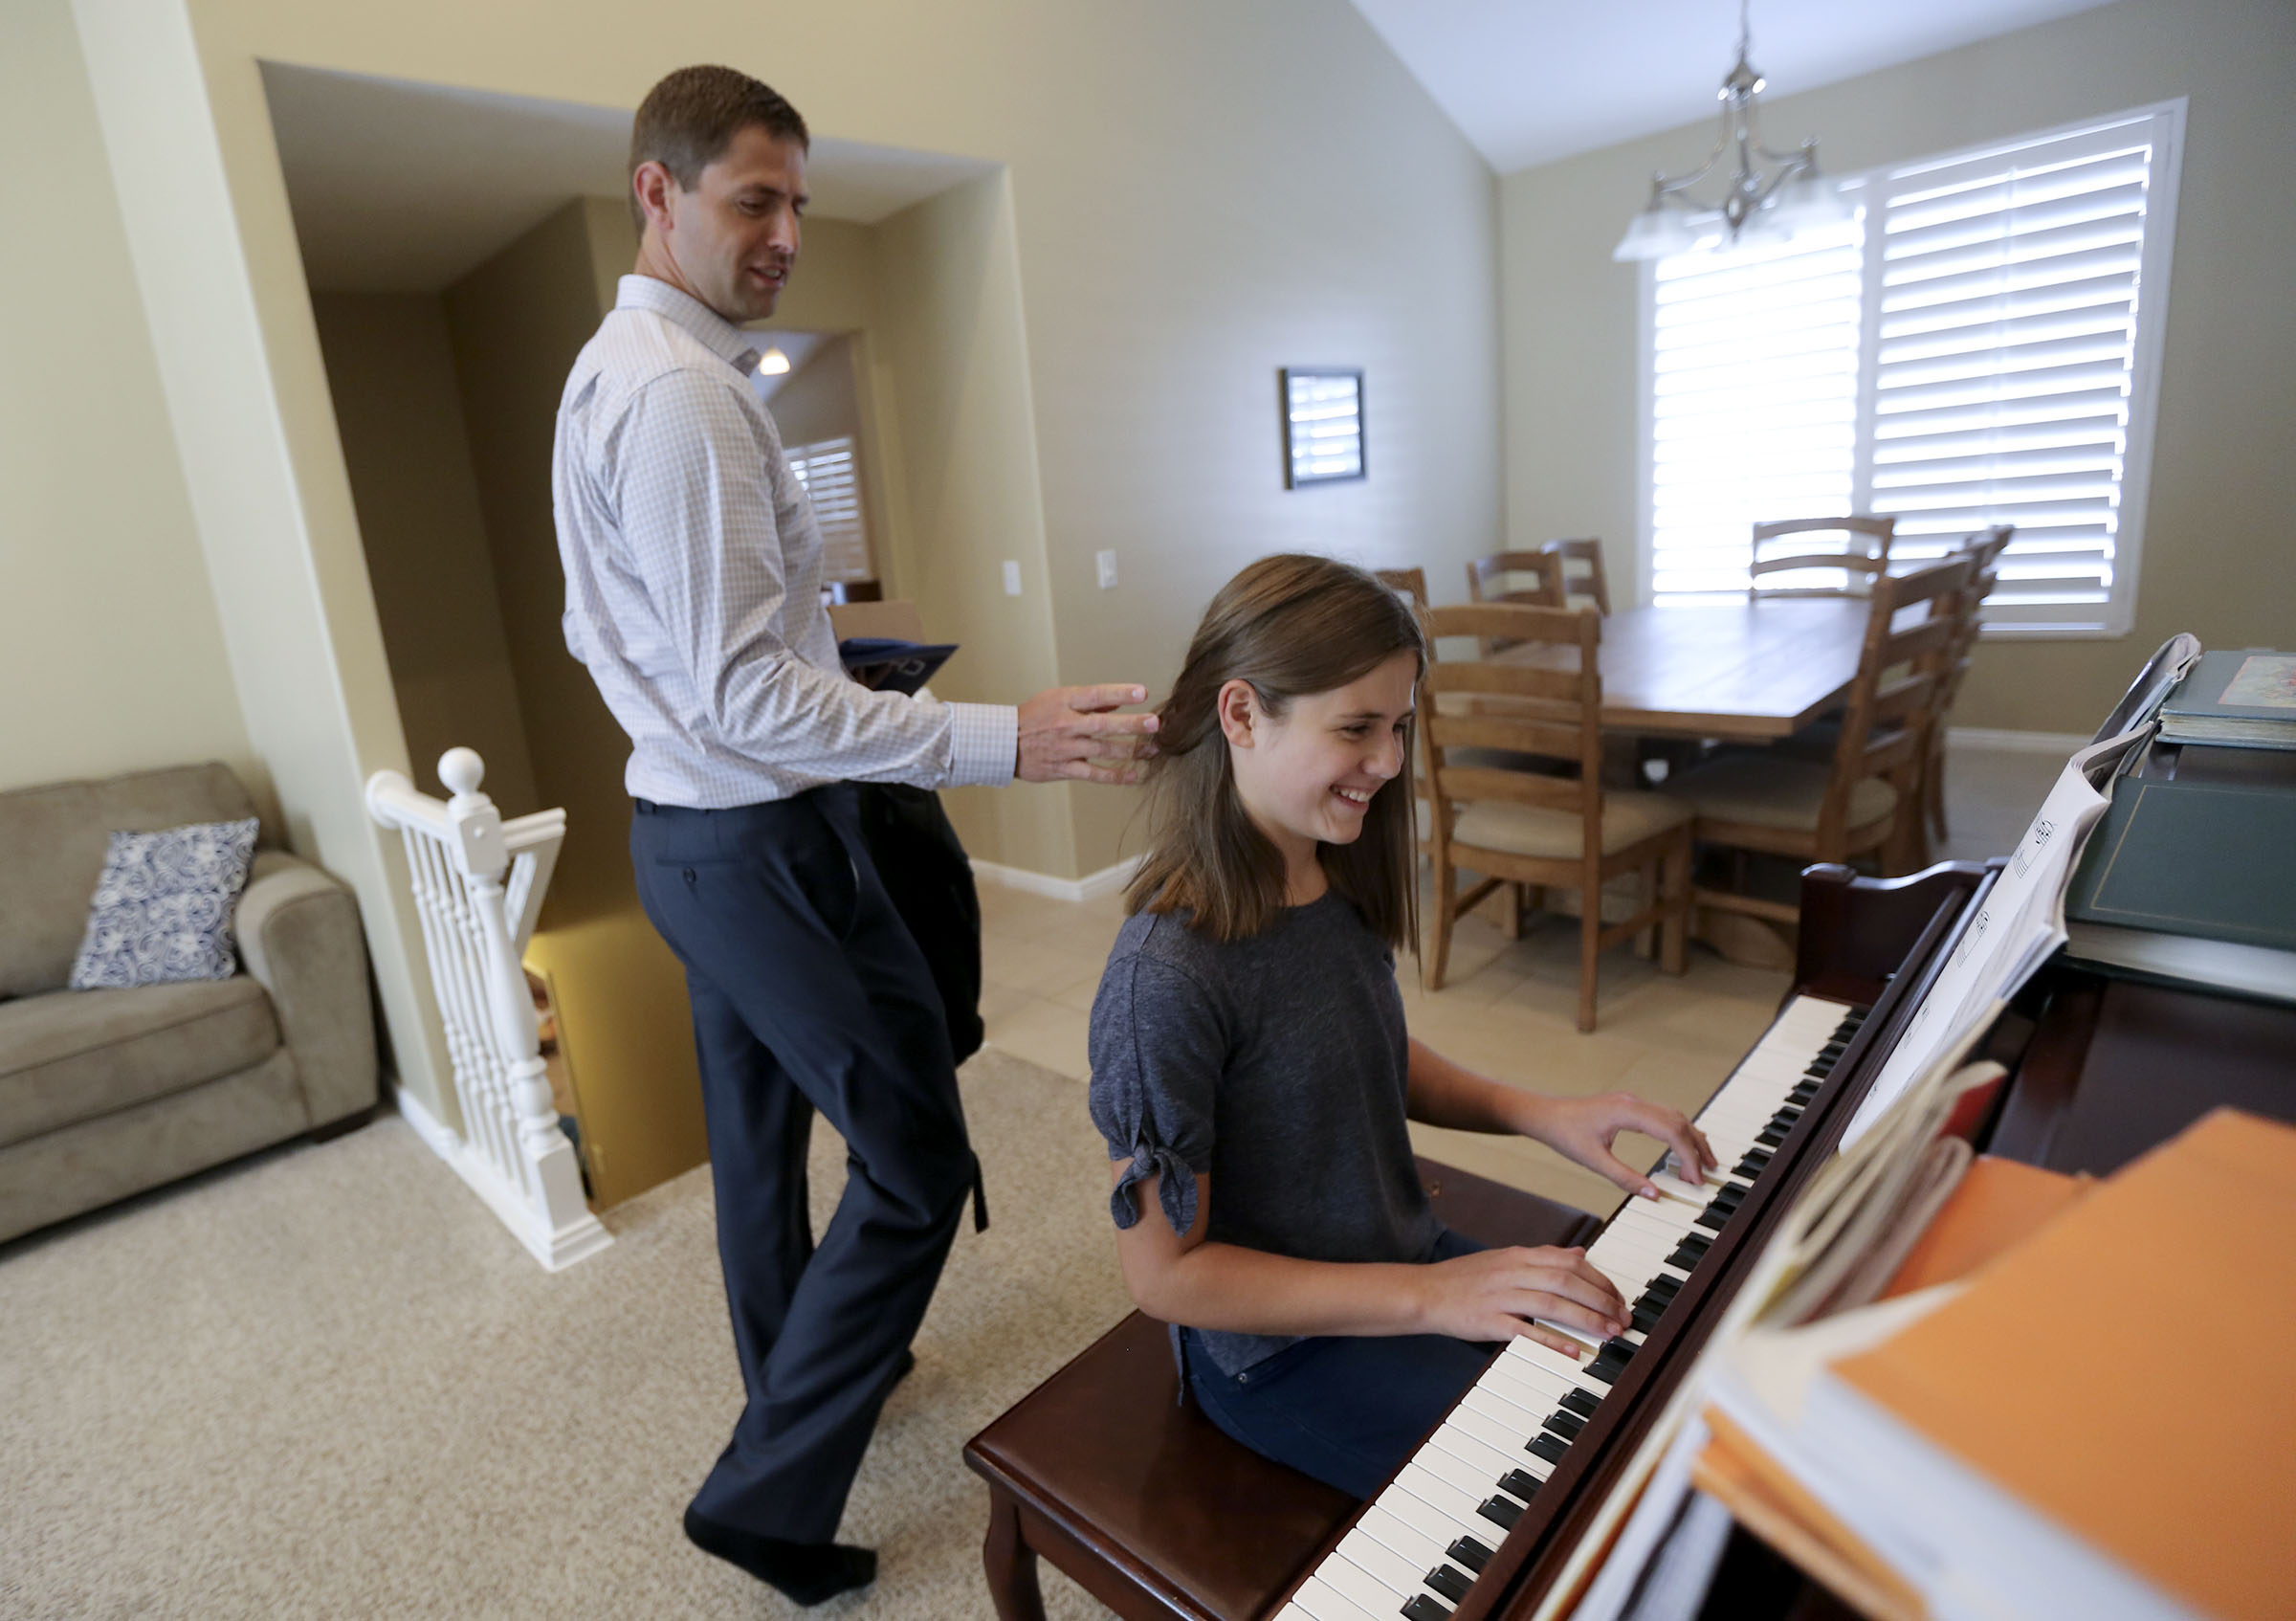 Matthew Grant pulls back his daughter Camilla's hair as she plays the piano at home in Midvale, Utah, on Monday, Sept. 9, 2019.